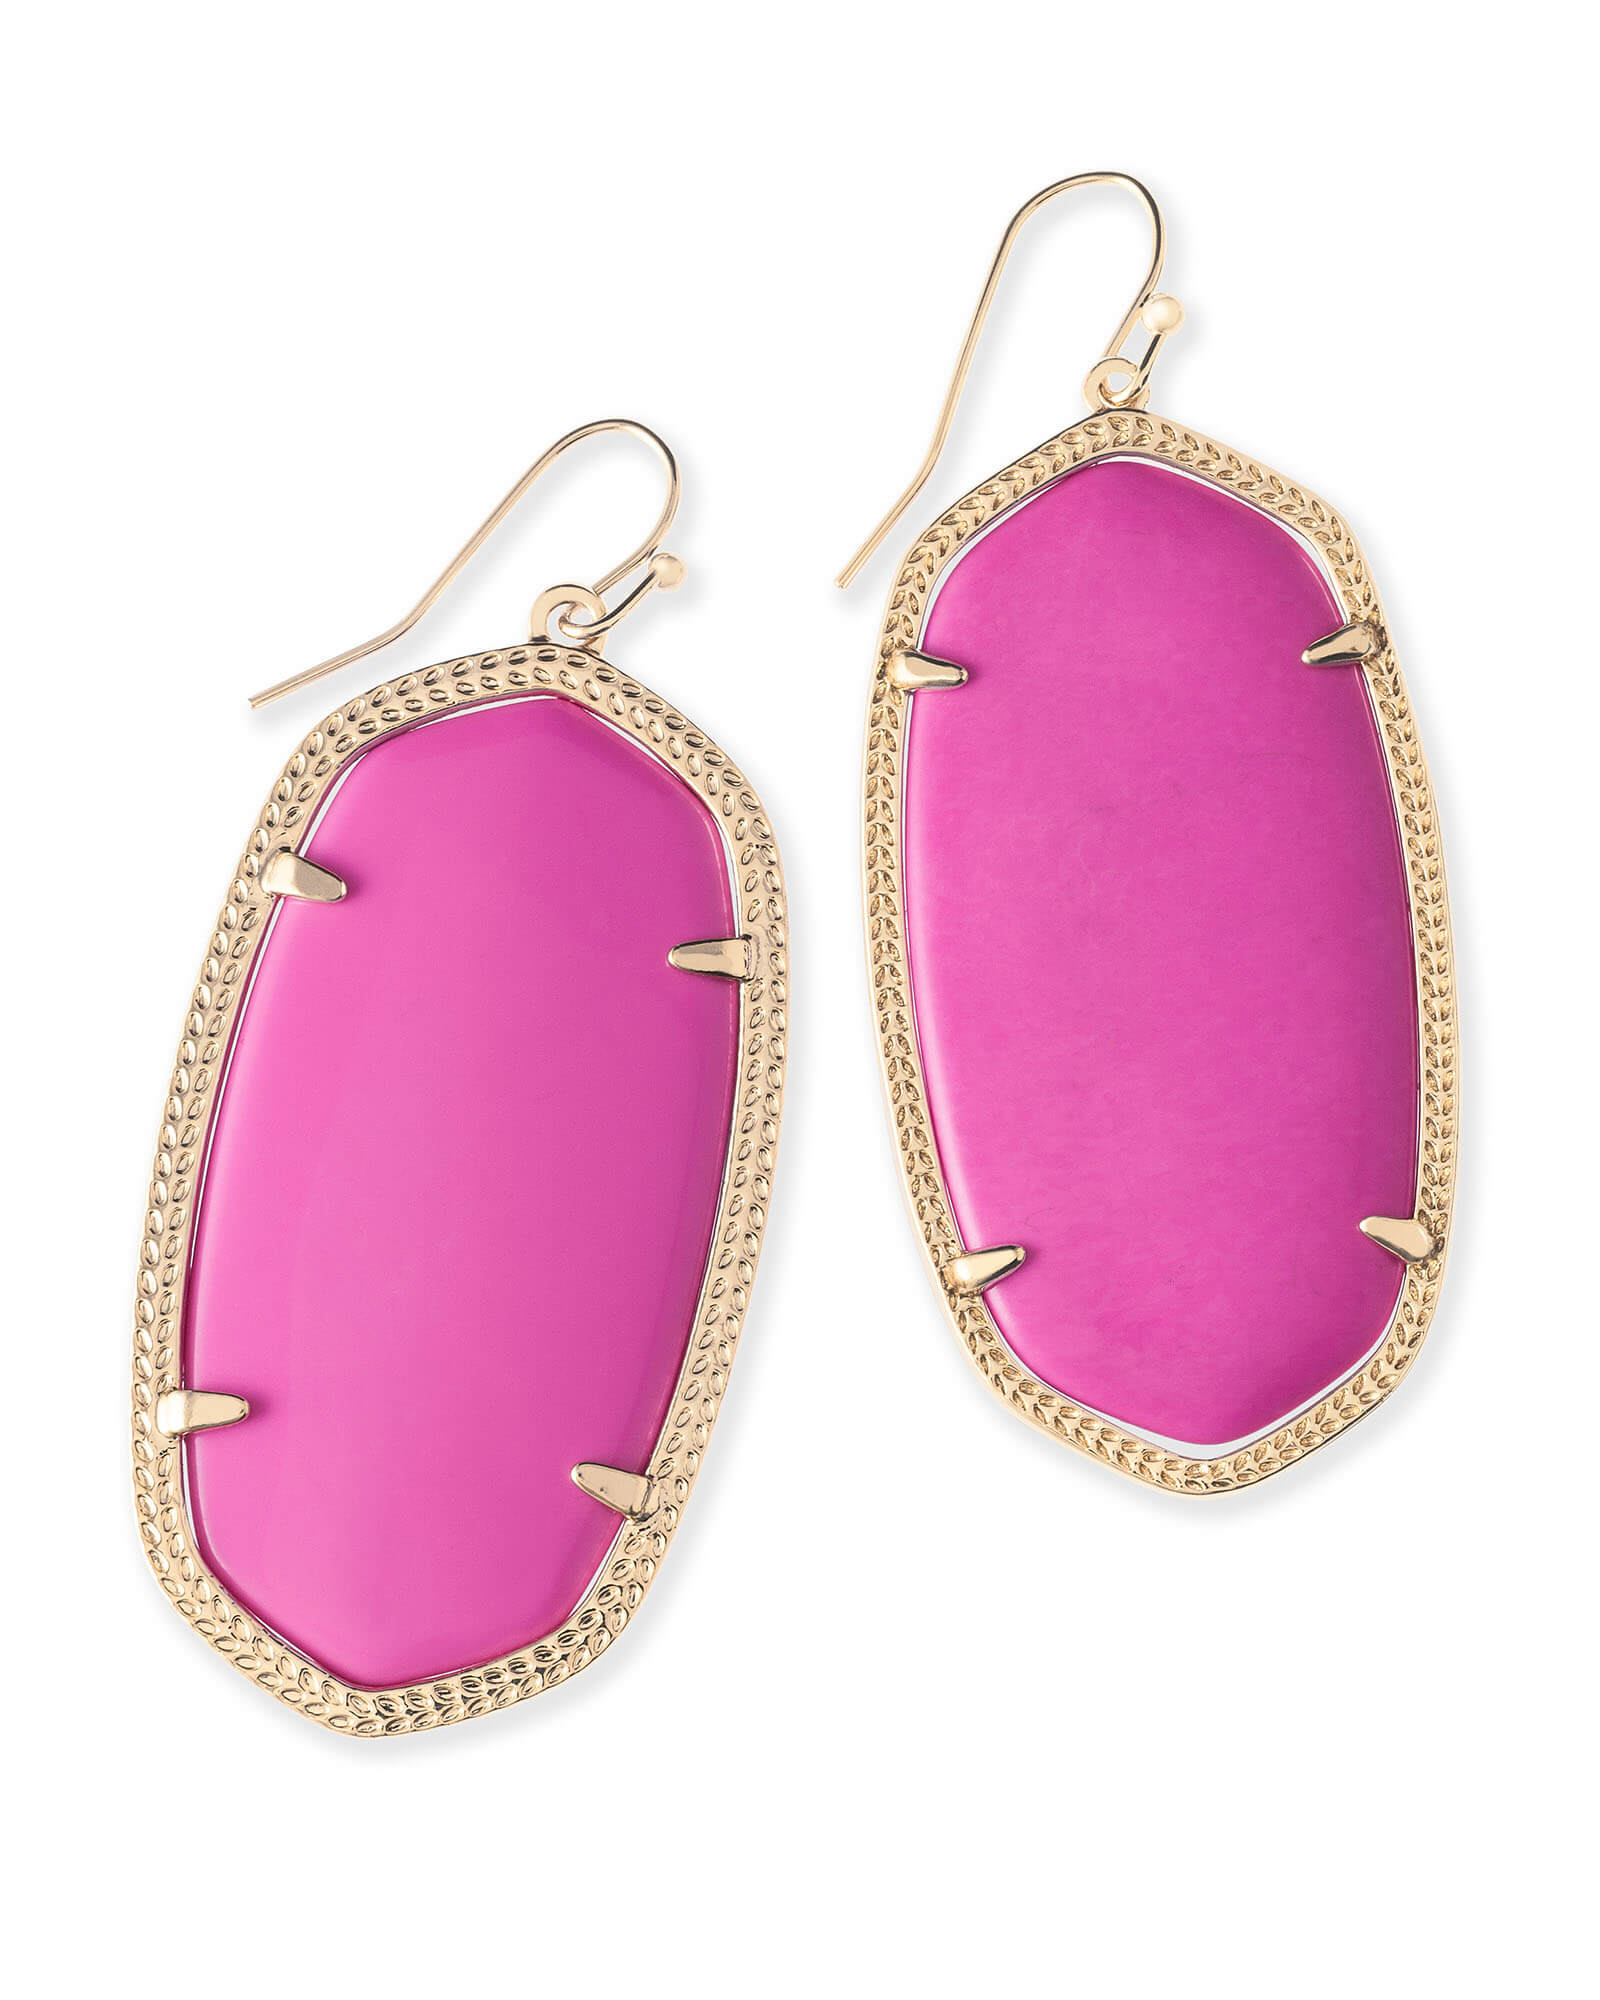 Danielle Statement Earrings in Magenta